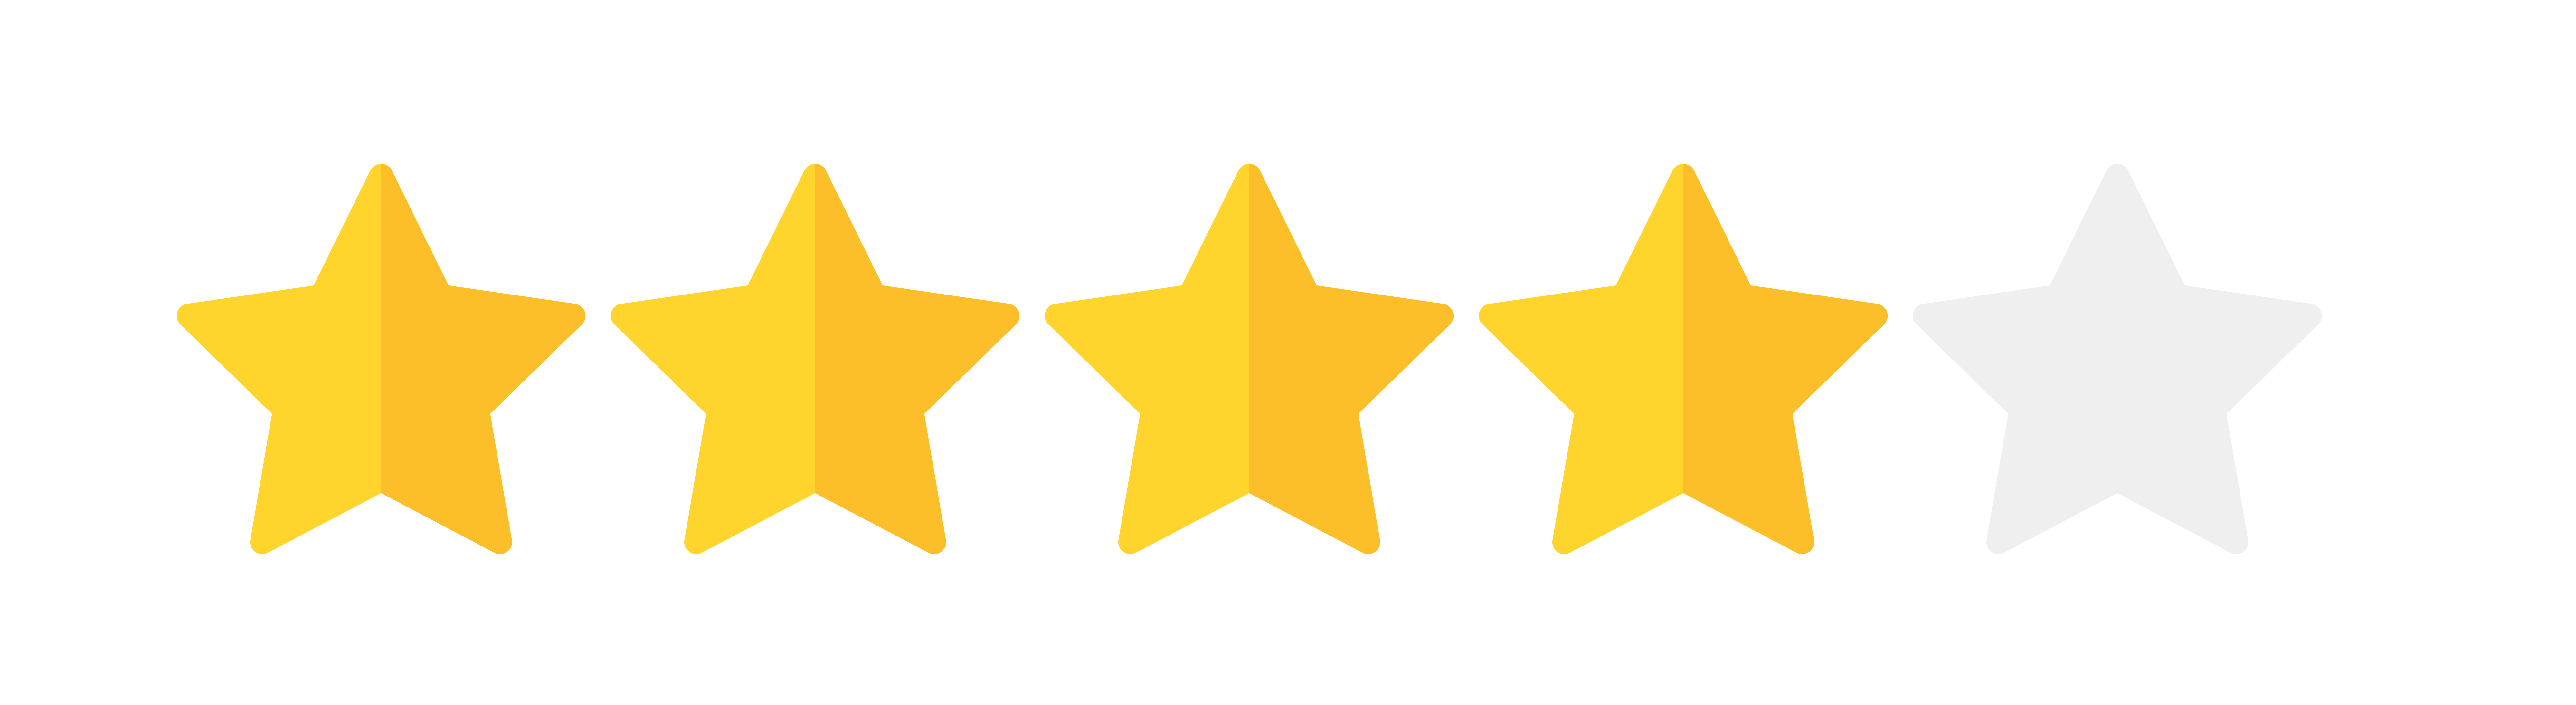 4 star-01.png